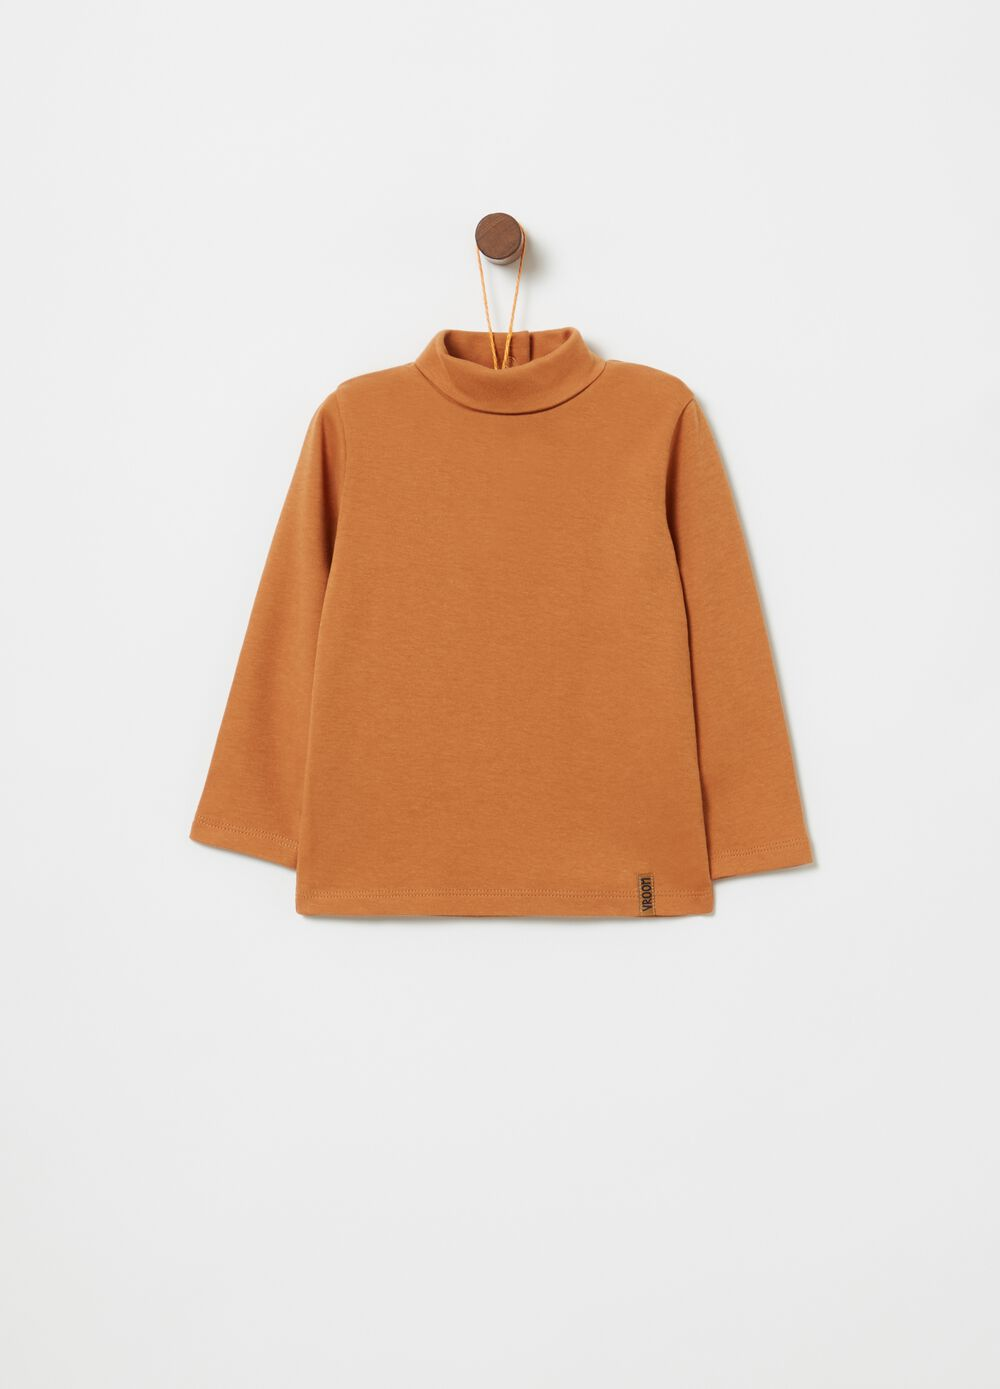 Turtleneck jumper in 100% warm cotton with high collar